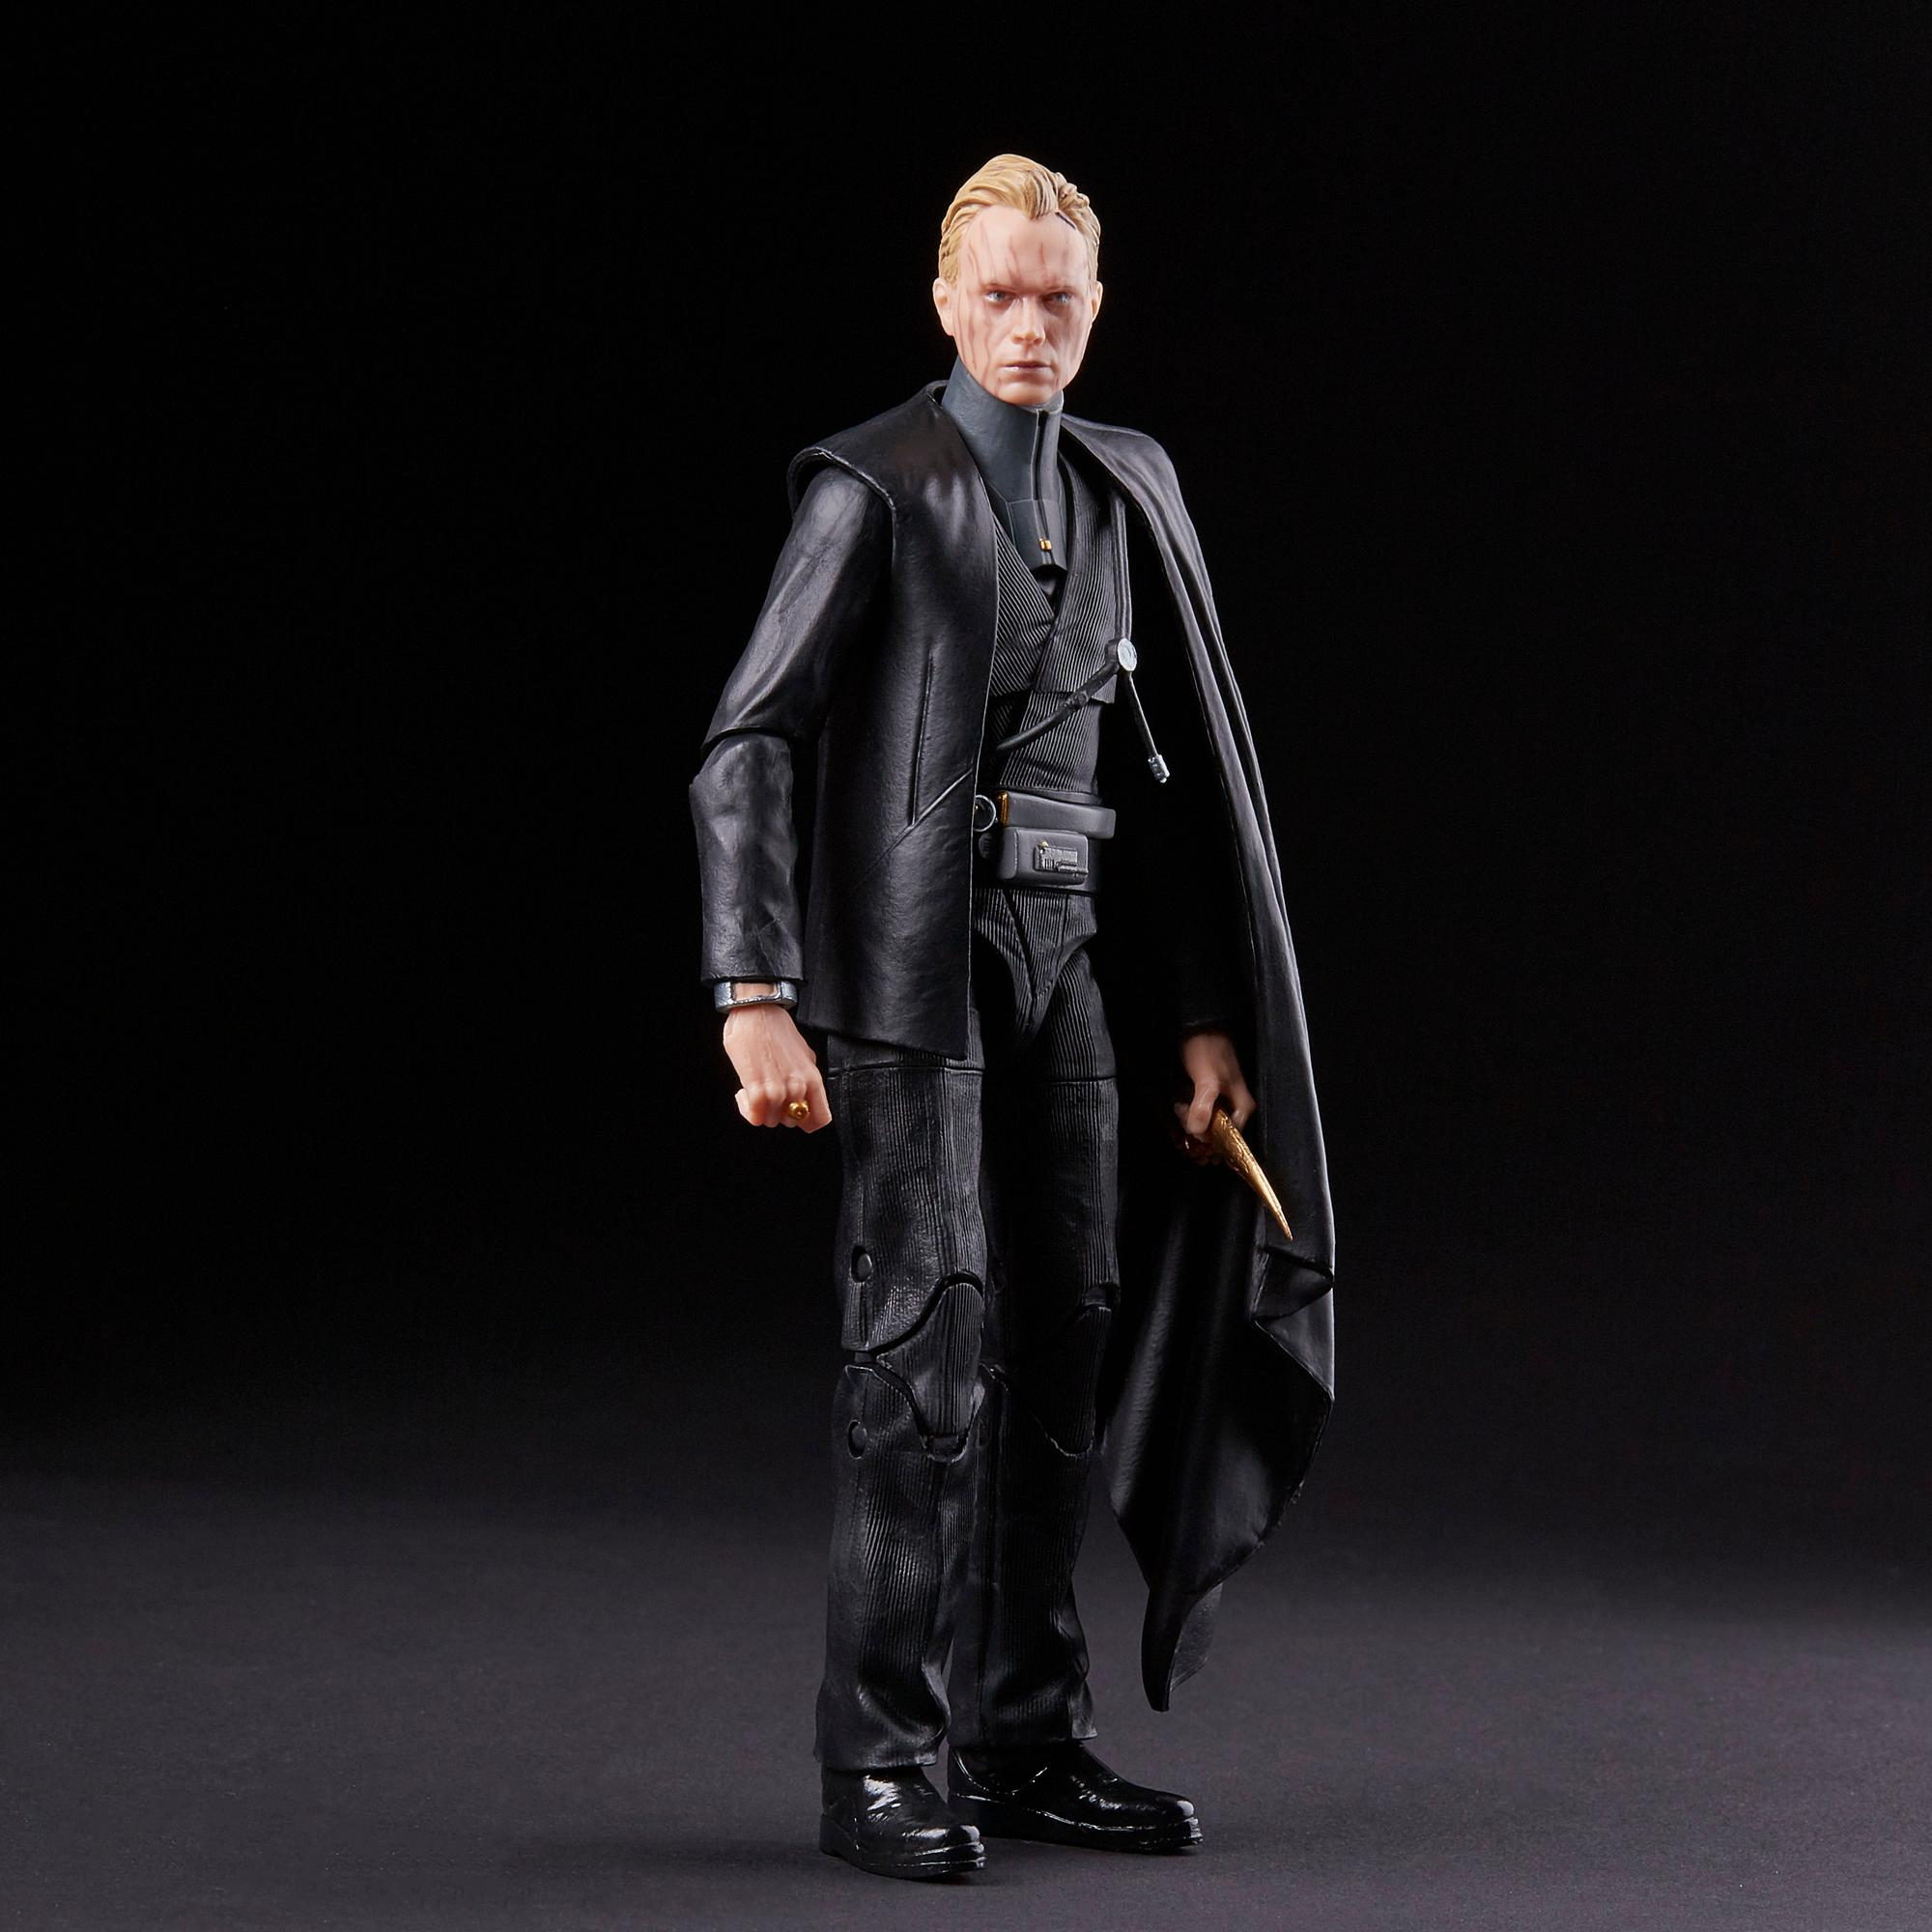 New In Stock Star Wars The Black Series Dryden Vos 6-Inch Figure